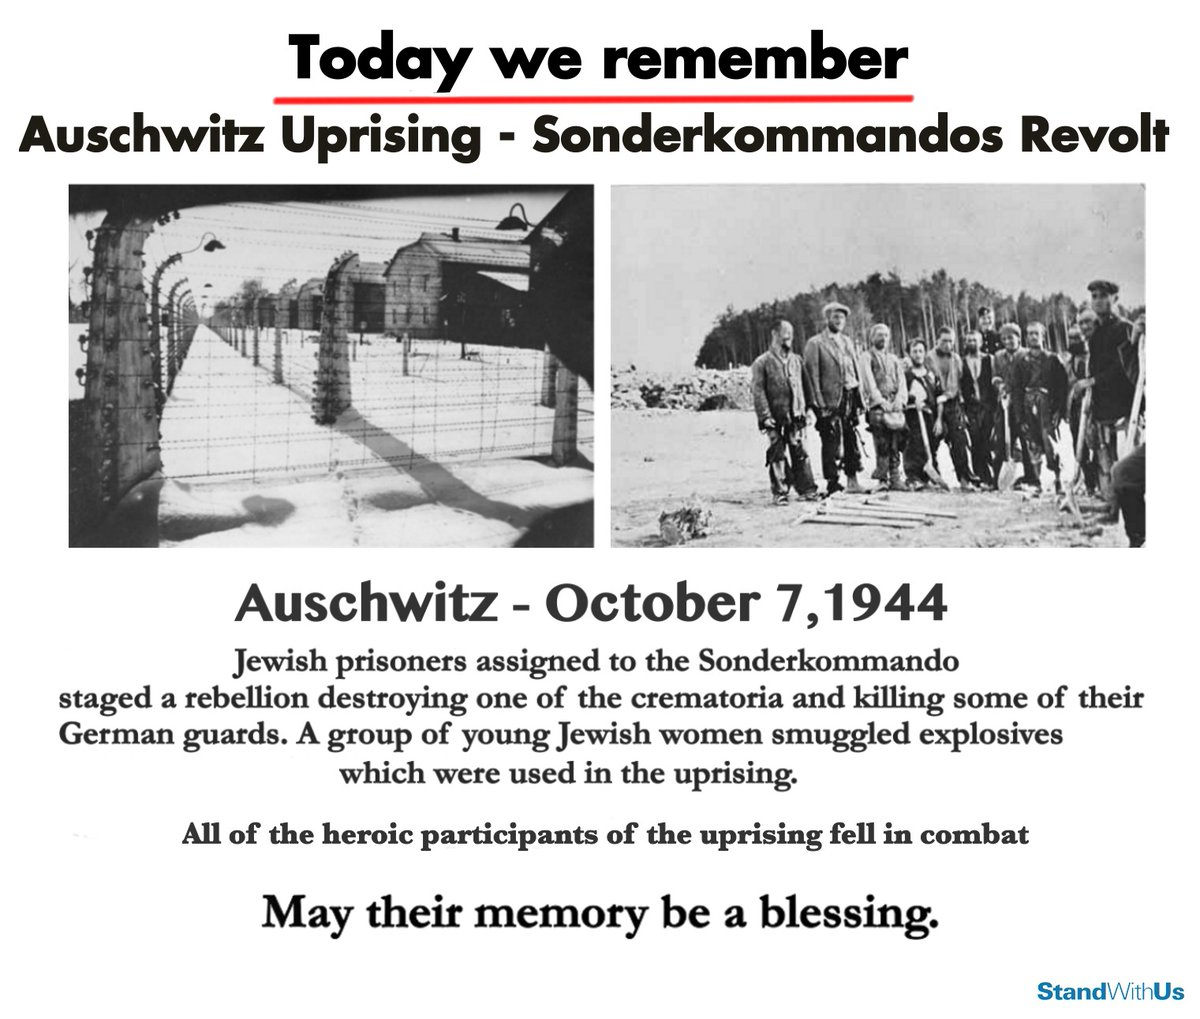 77 years ago today, the brave Sonderkommandos of Auschwitz, who were usually Jewish prisoners at the death camp, staged a revolt & destroyed one of the crematoria. Their brave actions slowed down the Nazi massacre of the Jews, saving thousands of lives. We salute their bravery!